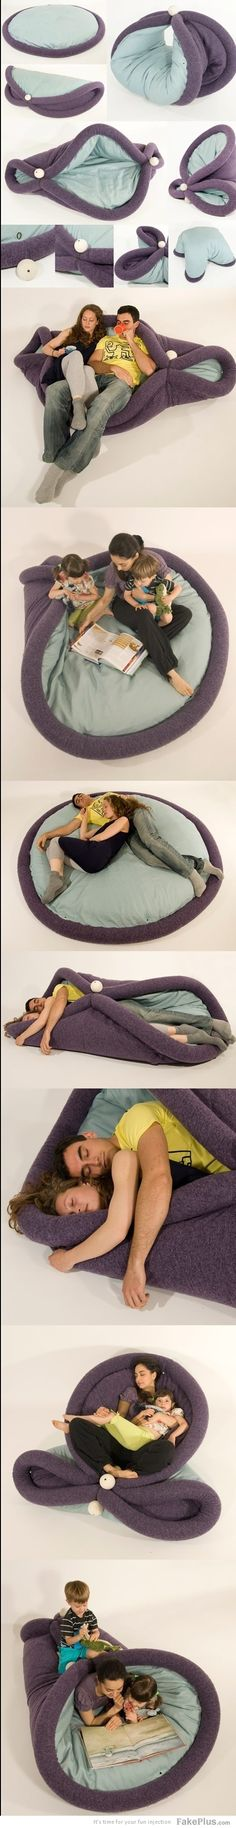 Oh my gahhhh I want! HOW SWEET IS THIS